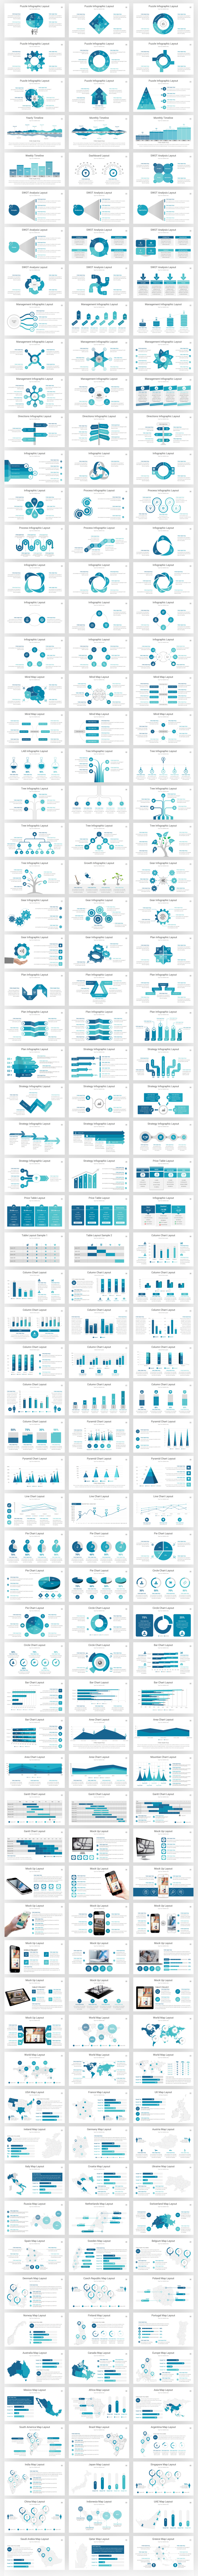 PRO Multipurpose PowerPoint Presentation Template - 3